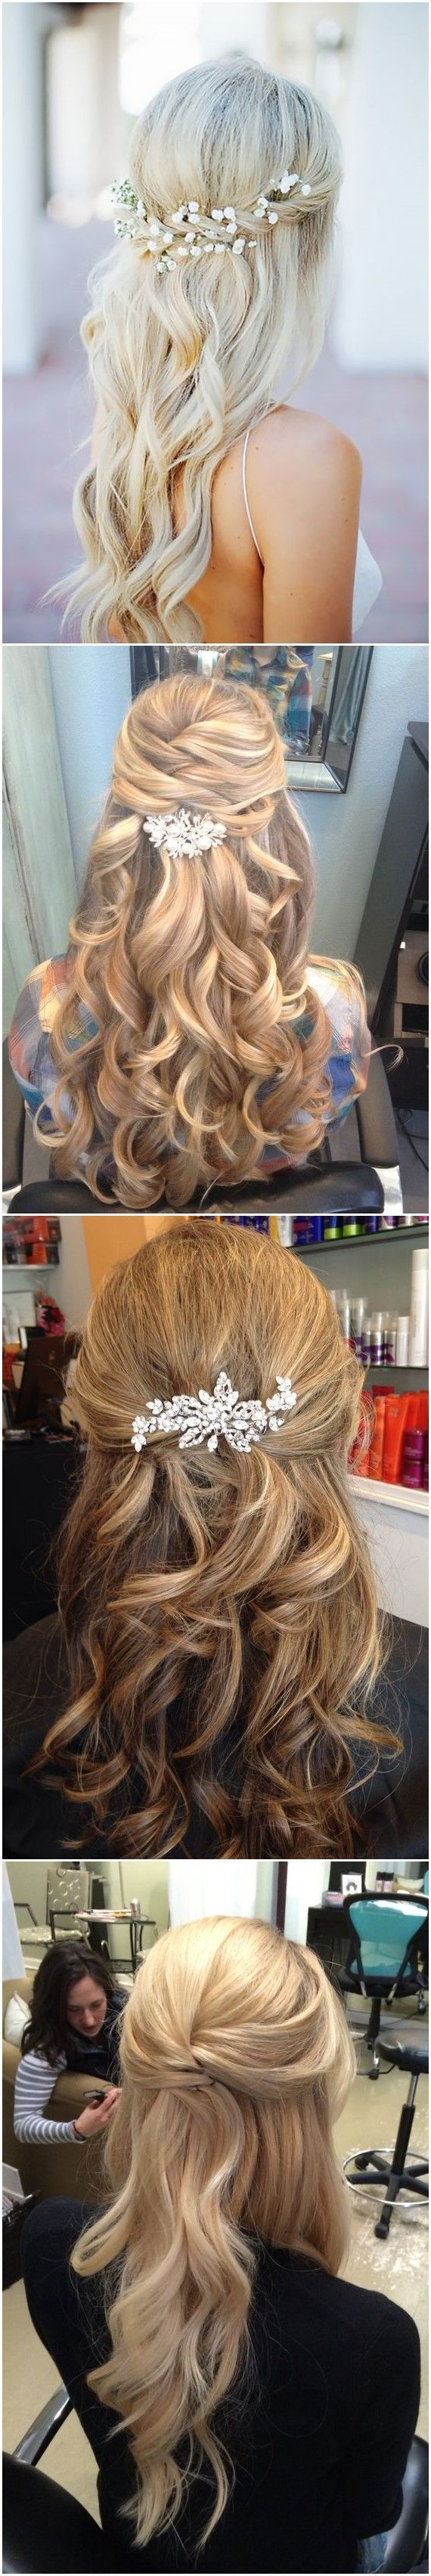 105 best Wedding Hairstyles images on Pinterest